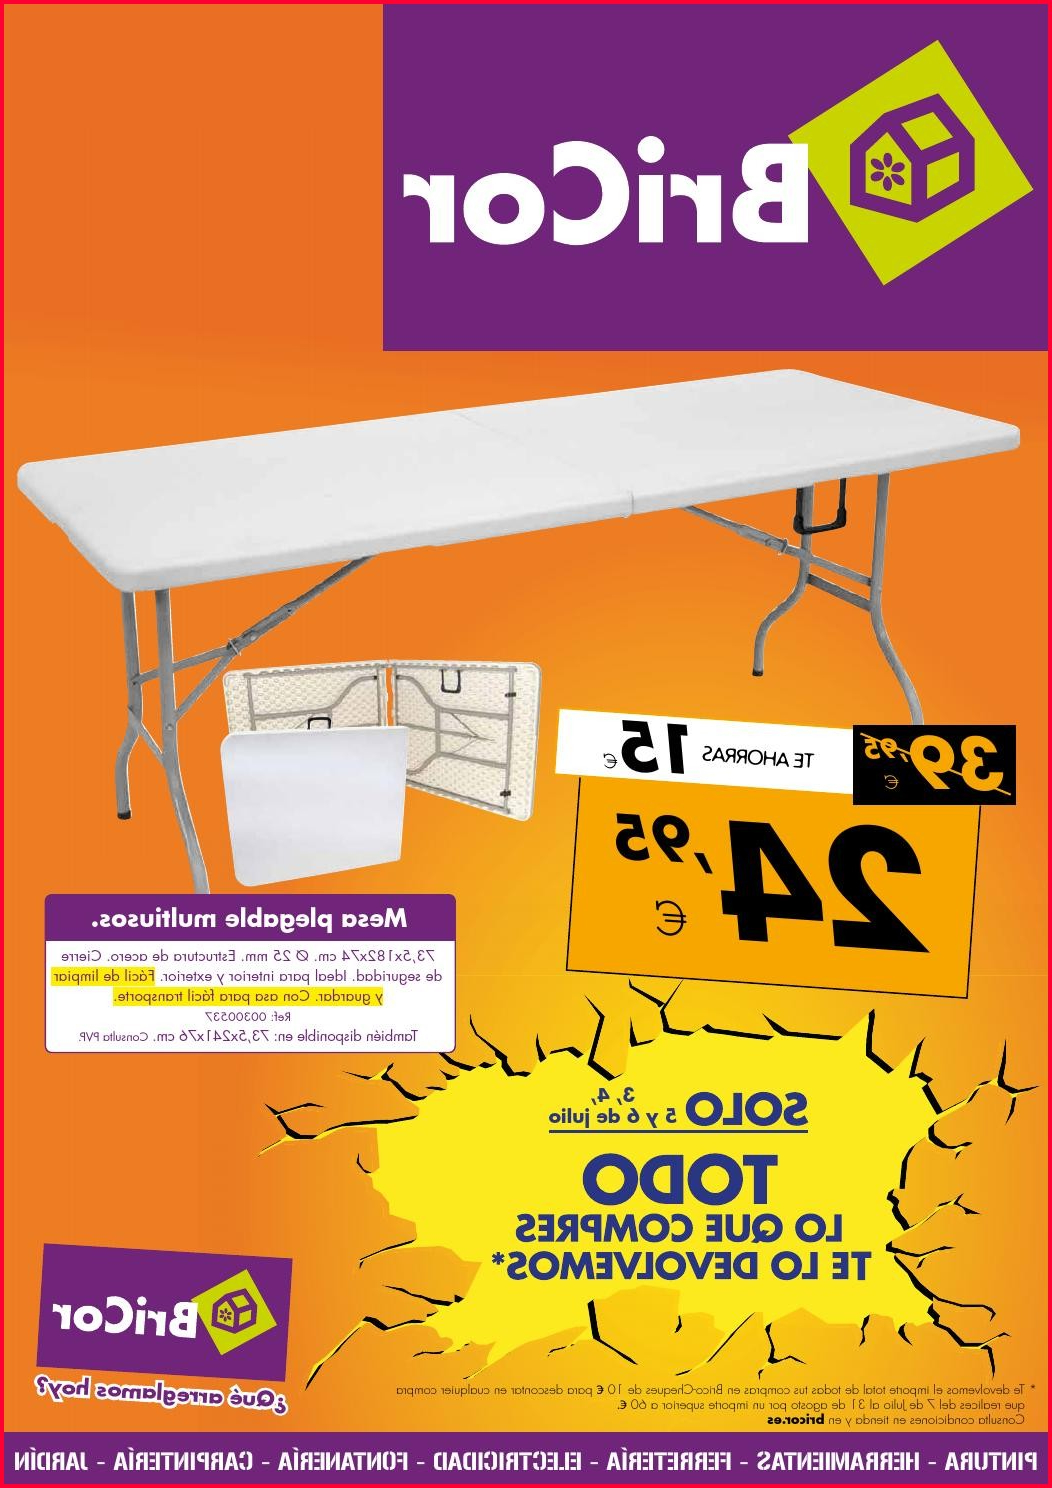 Mesa Plegable Bricor Y7du Mesa Plegable Bricor Bricor by Losdescuentos issuu